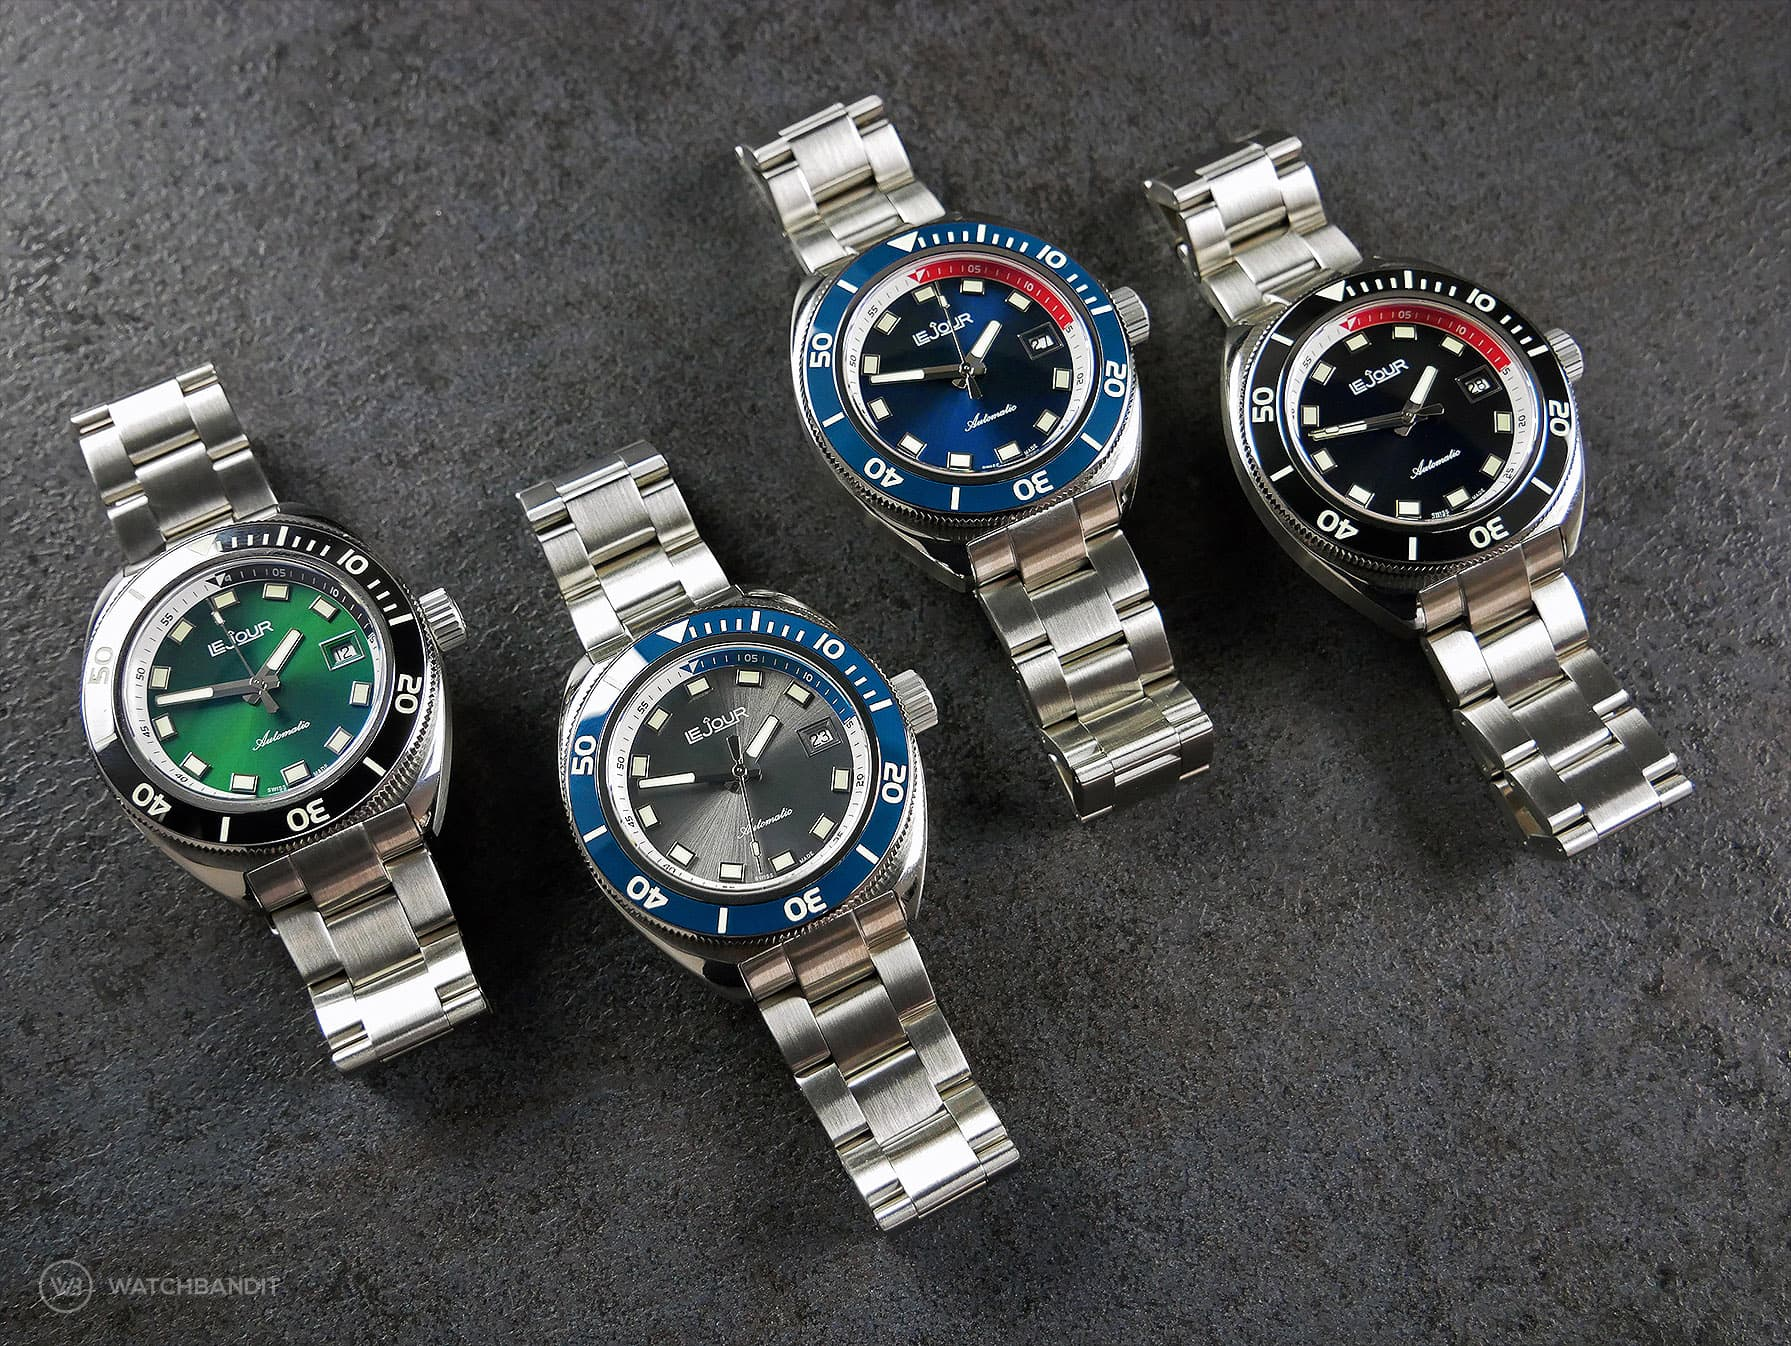 Le Jour Hammerhead collection watchbandit